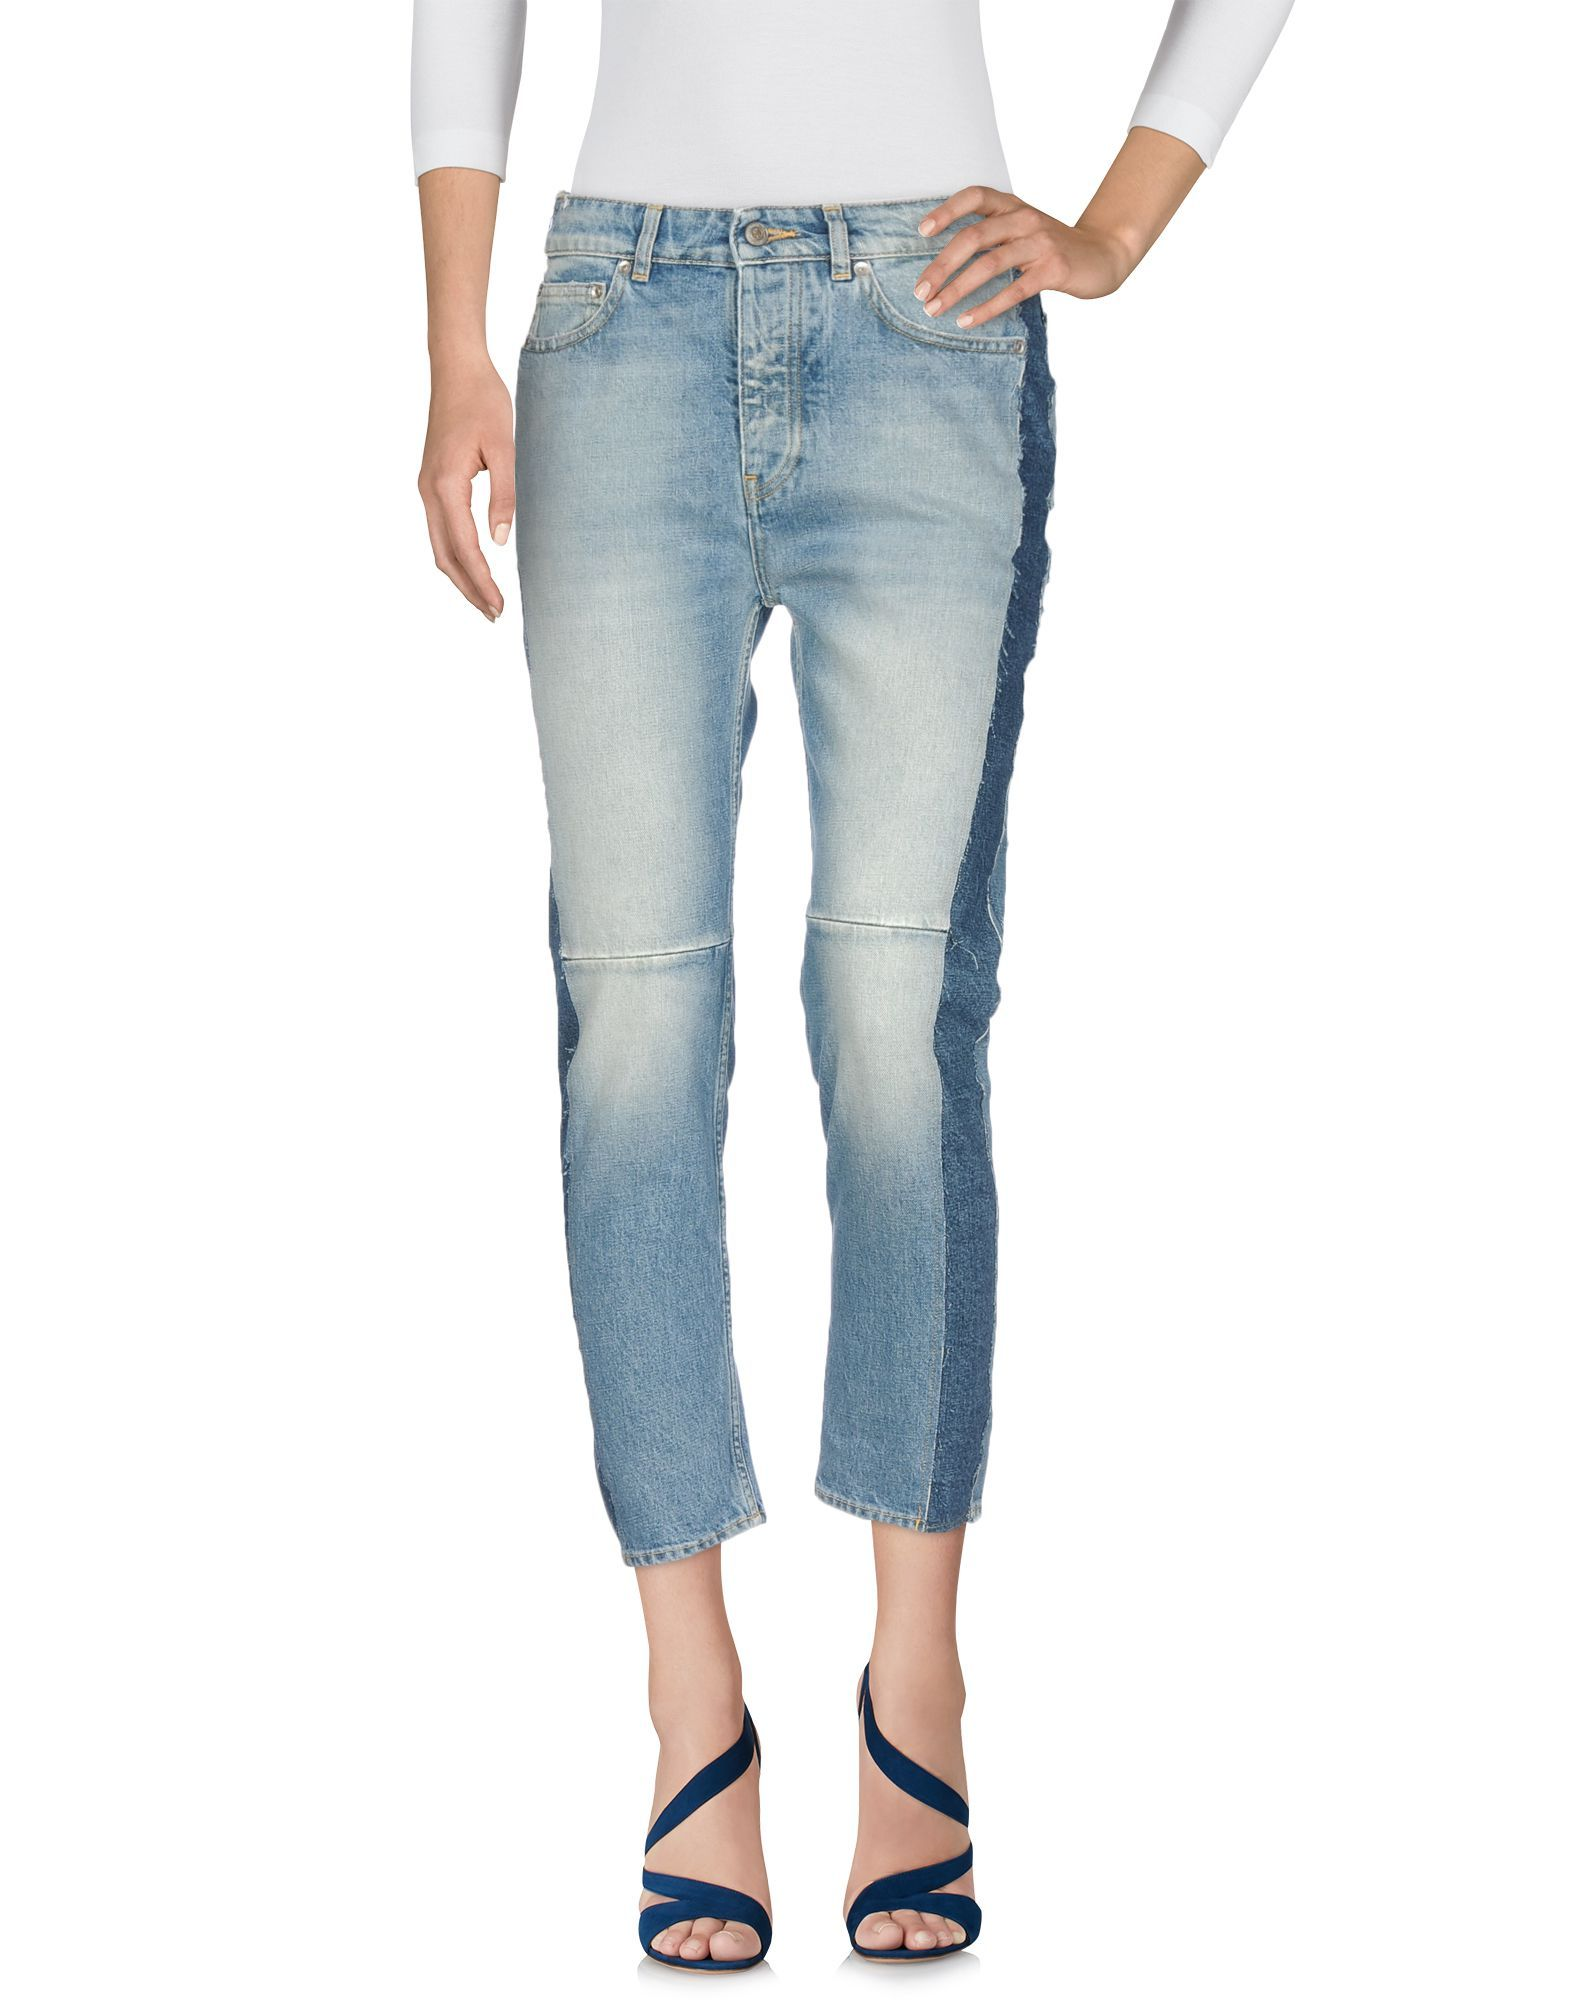 Golden Goose Deluxe Brand Blue Cotton Cropped Jeans